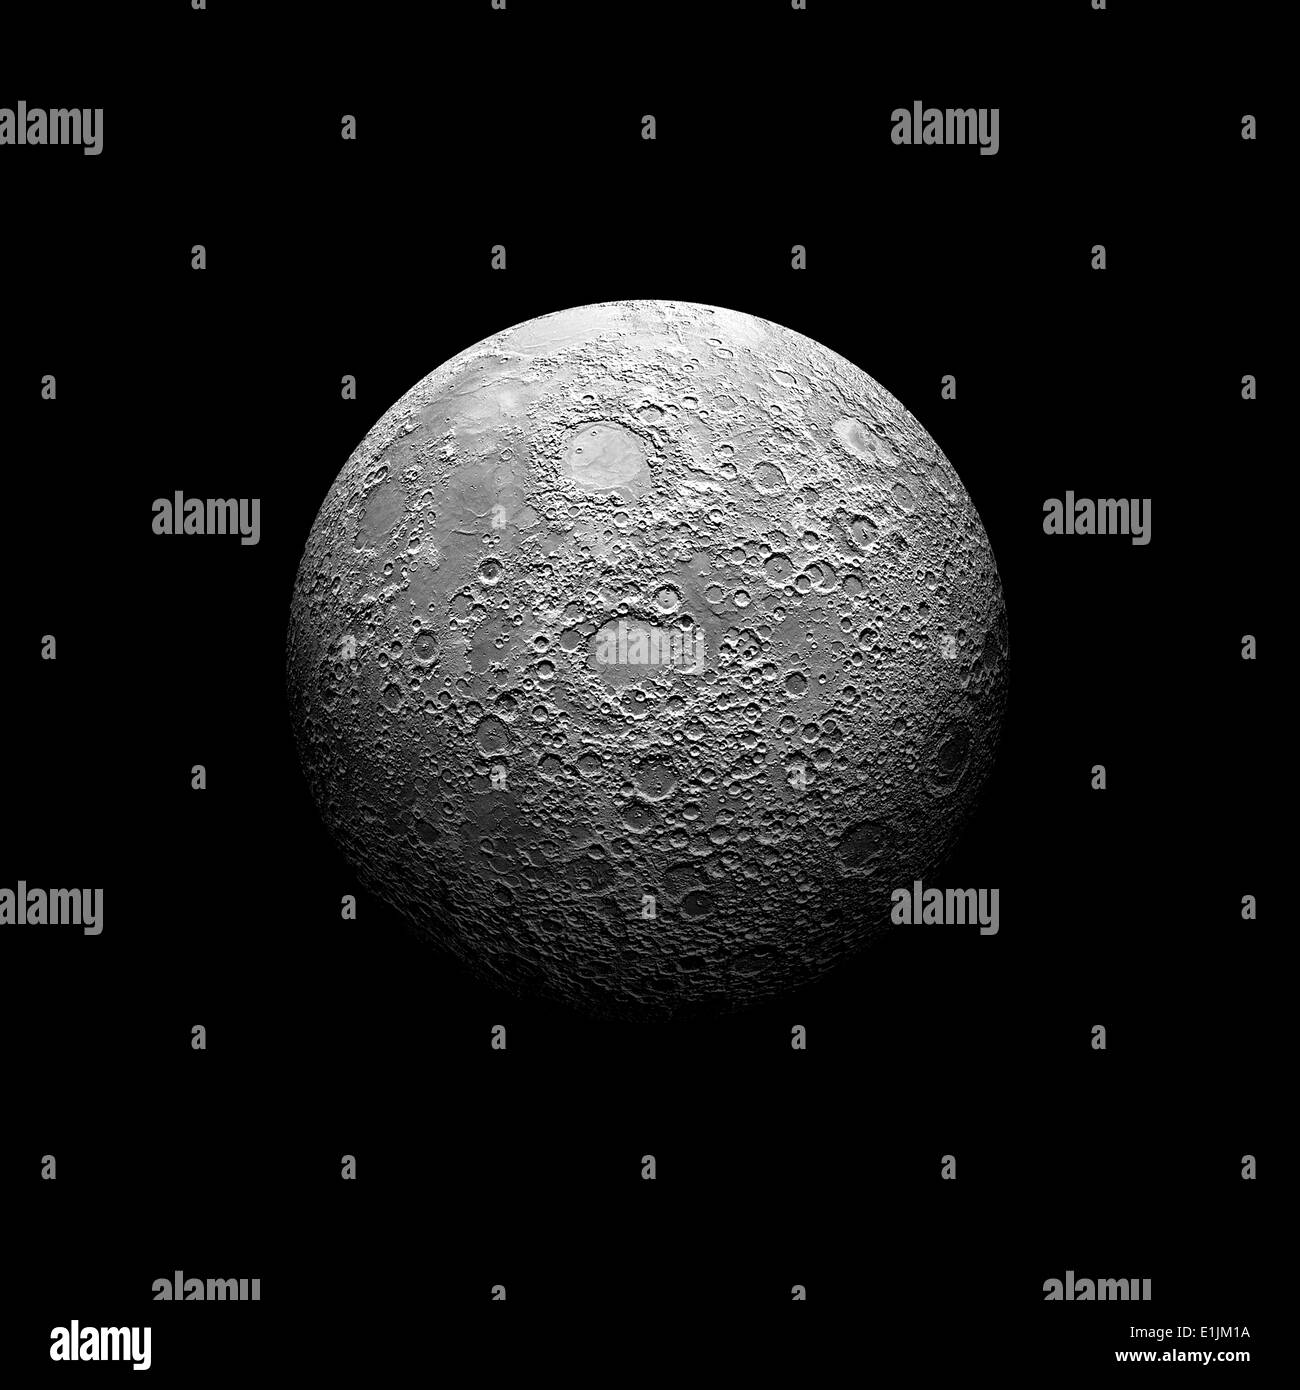 Artist's depiction of a heavily cratered moon. The moon elements were extracted from a false color, NASA topo map. - Stock Image